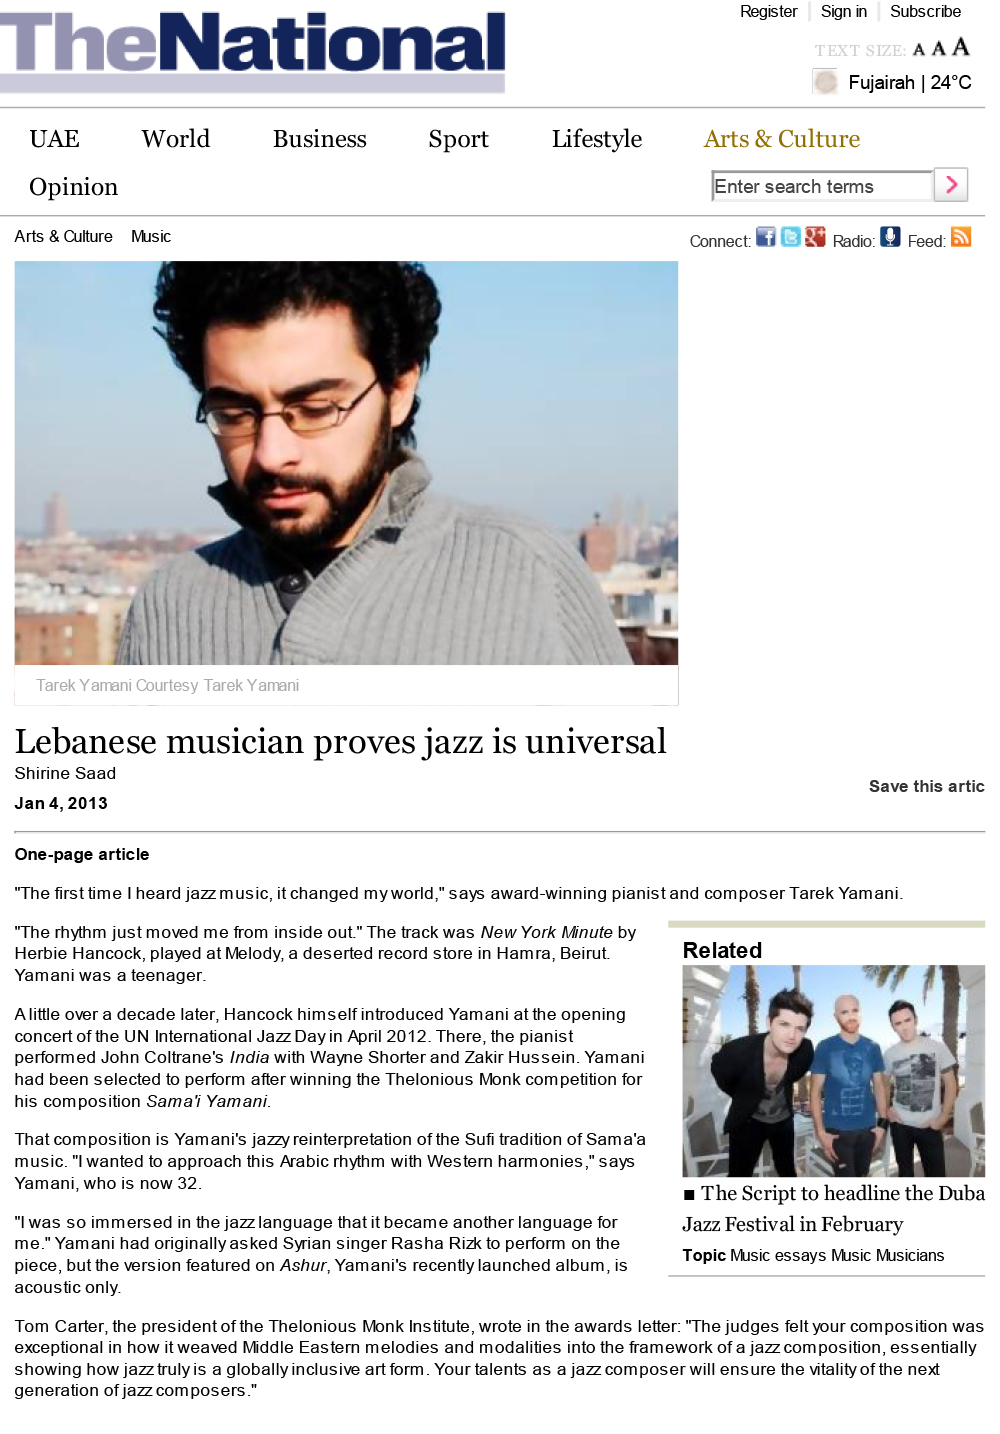 The National  / 04 Jan 2013 / Shirine Saad -  Lebanese Musician Proves Jazz Is Universal